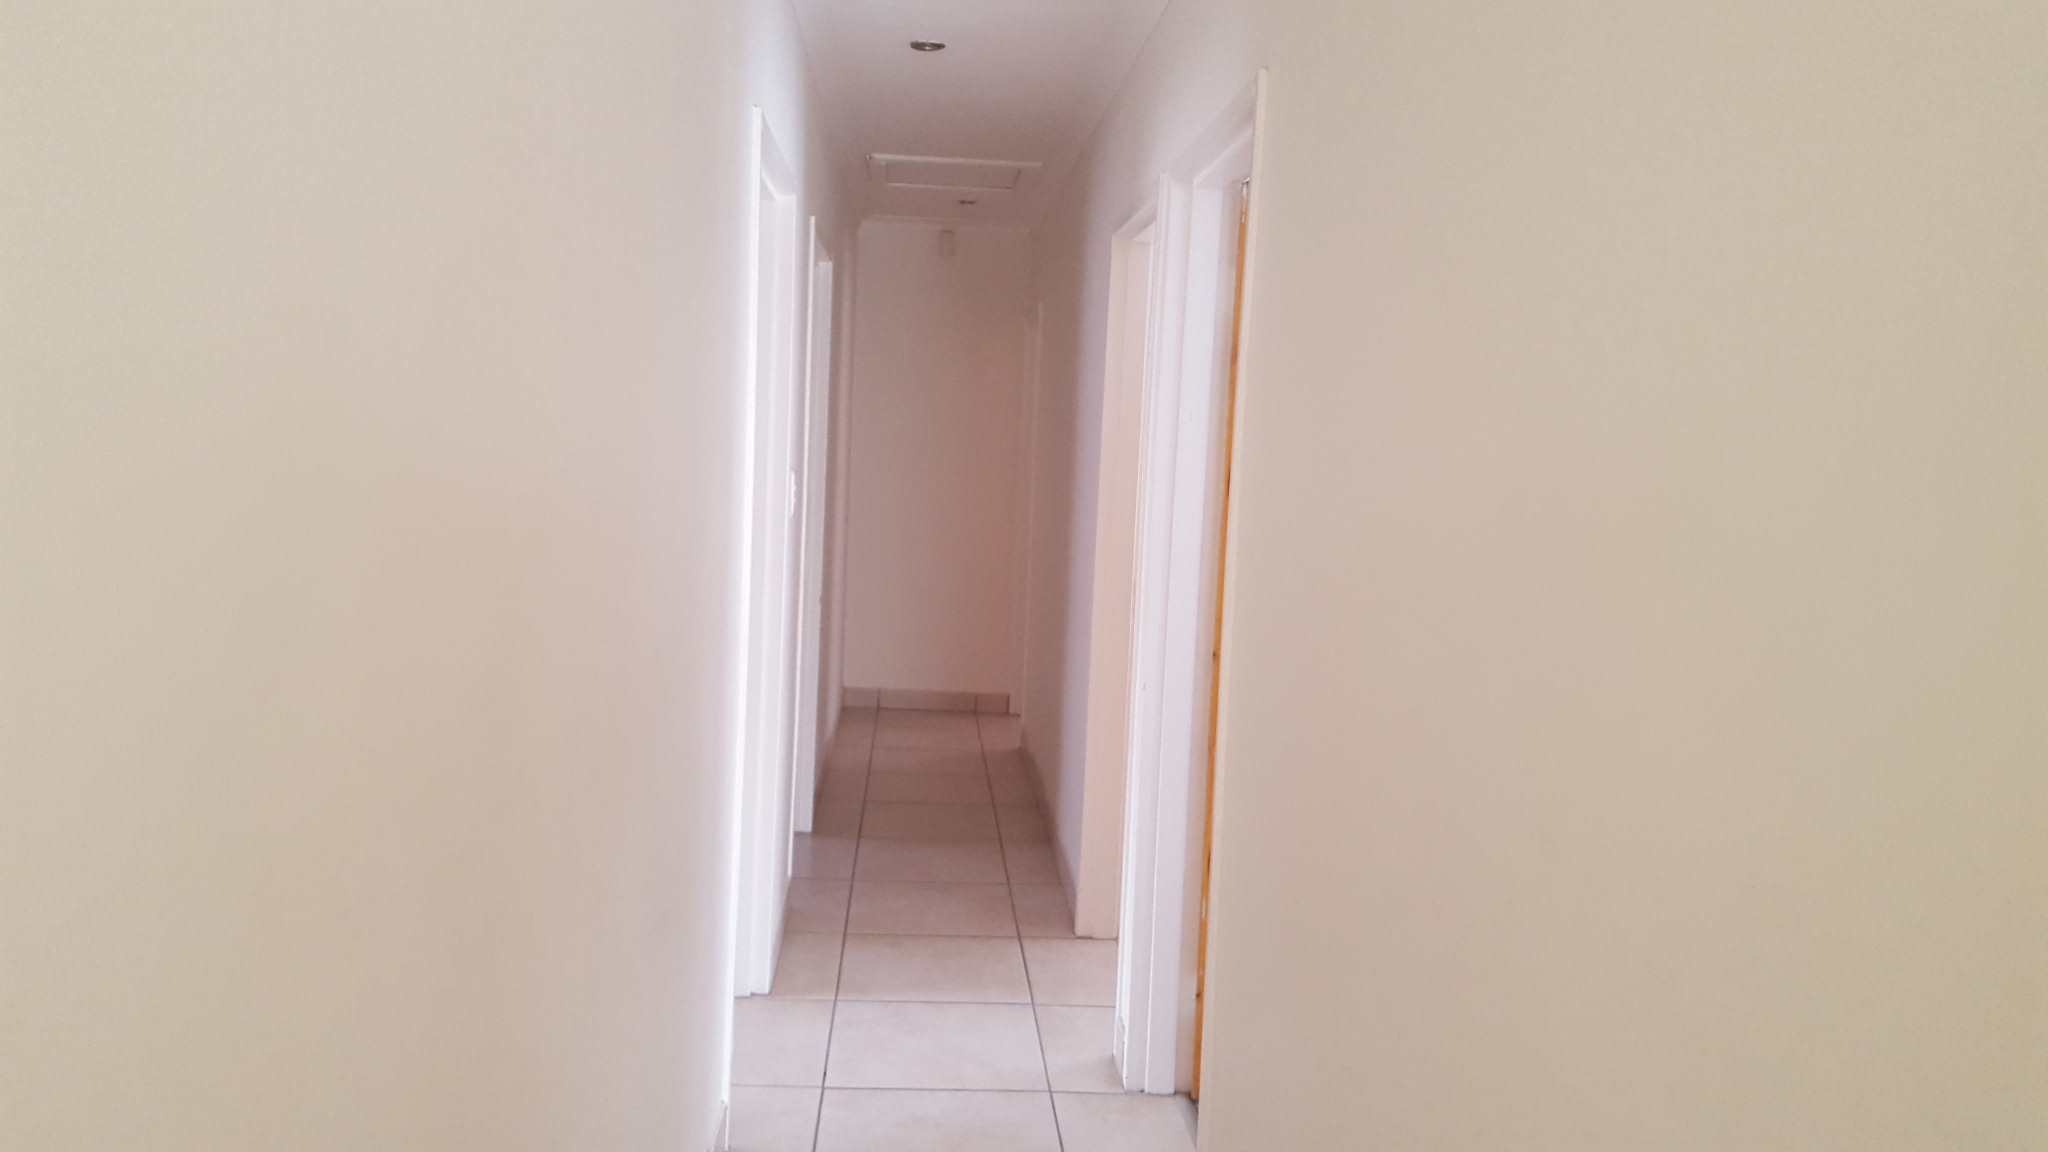 5 Bedroom House for sale in Bluewater Bay ENT0067493 : photo#22